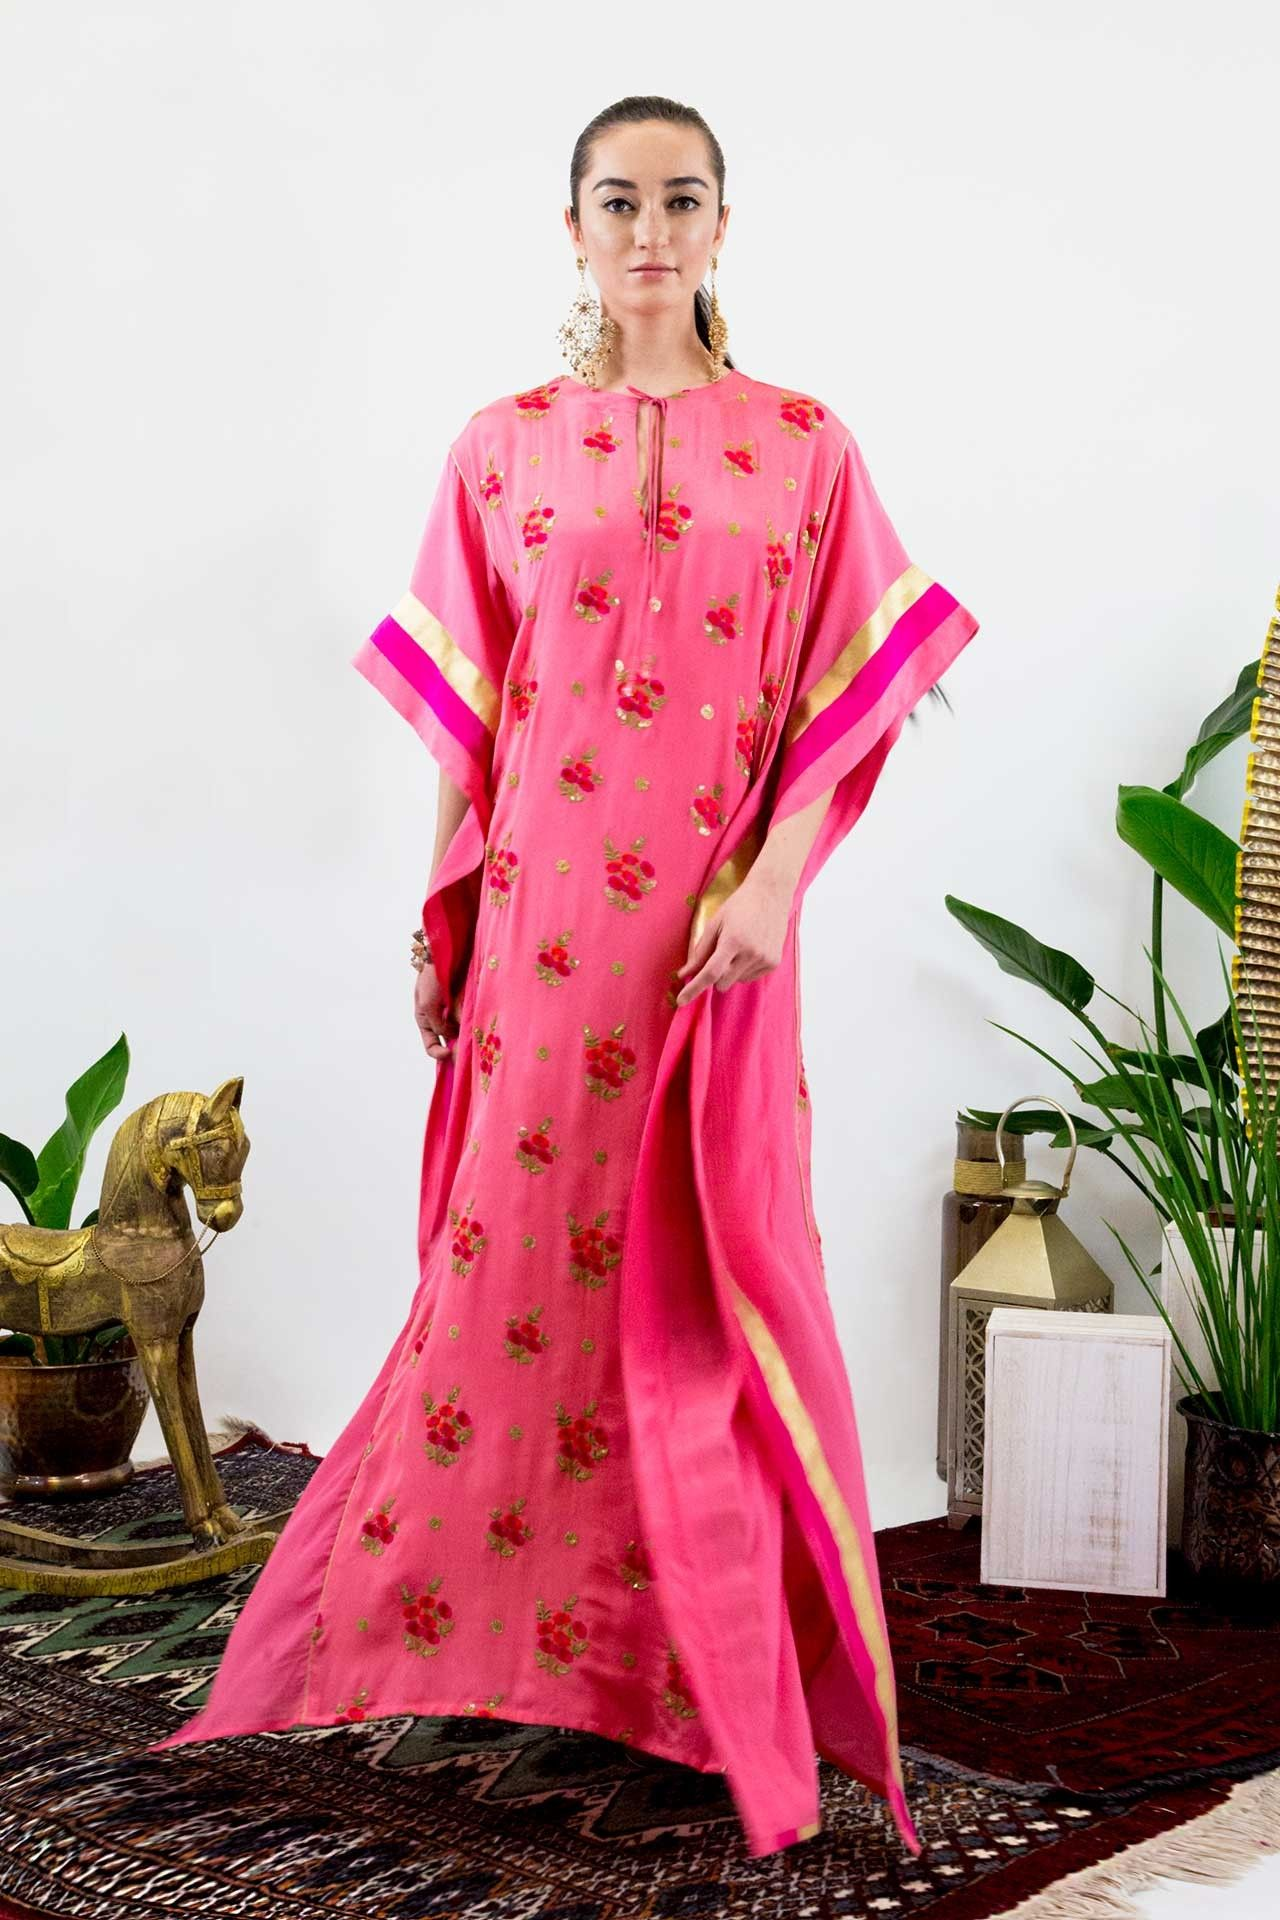 Floral embroidered pink long kaftan caftans pinterest kaftans